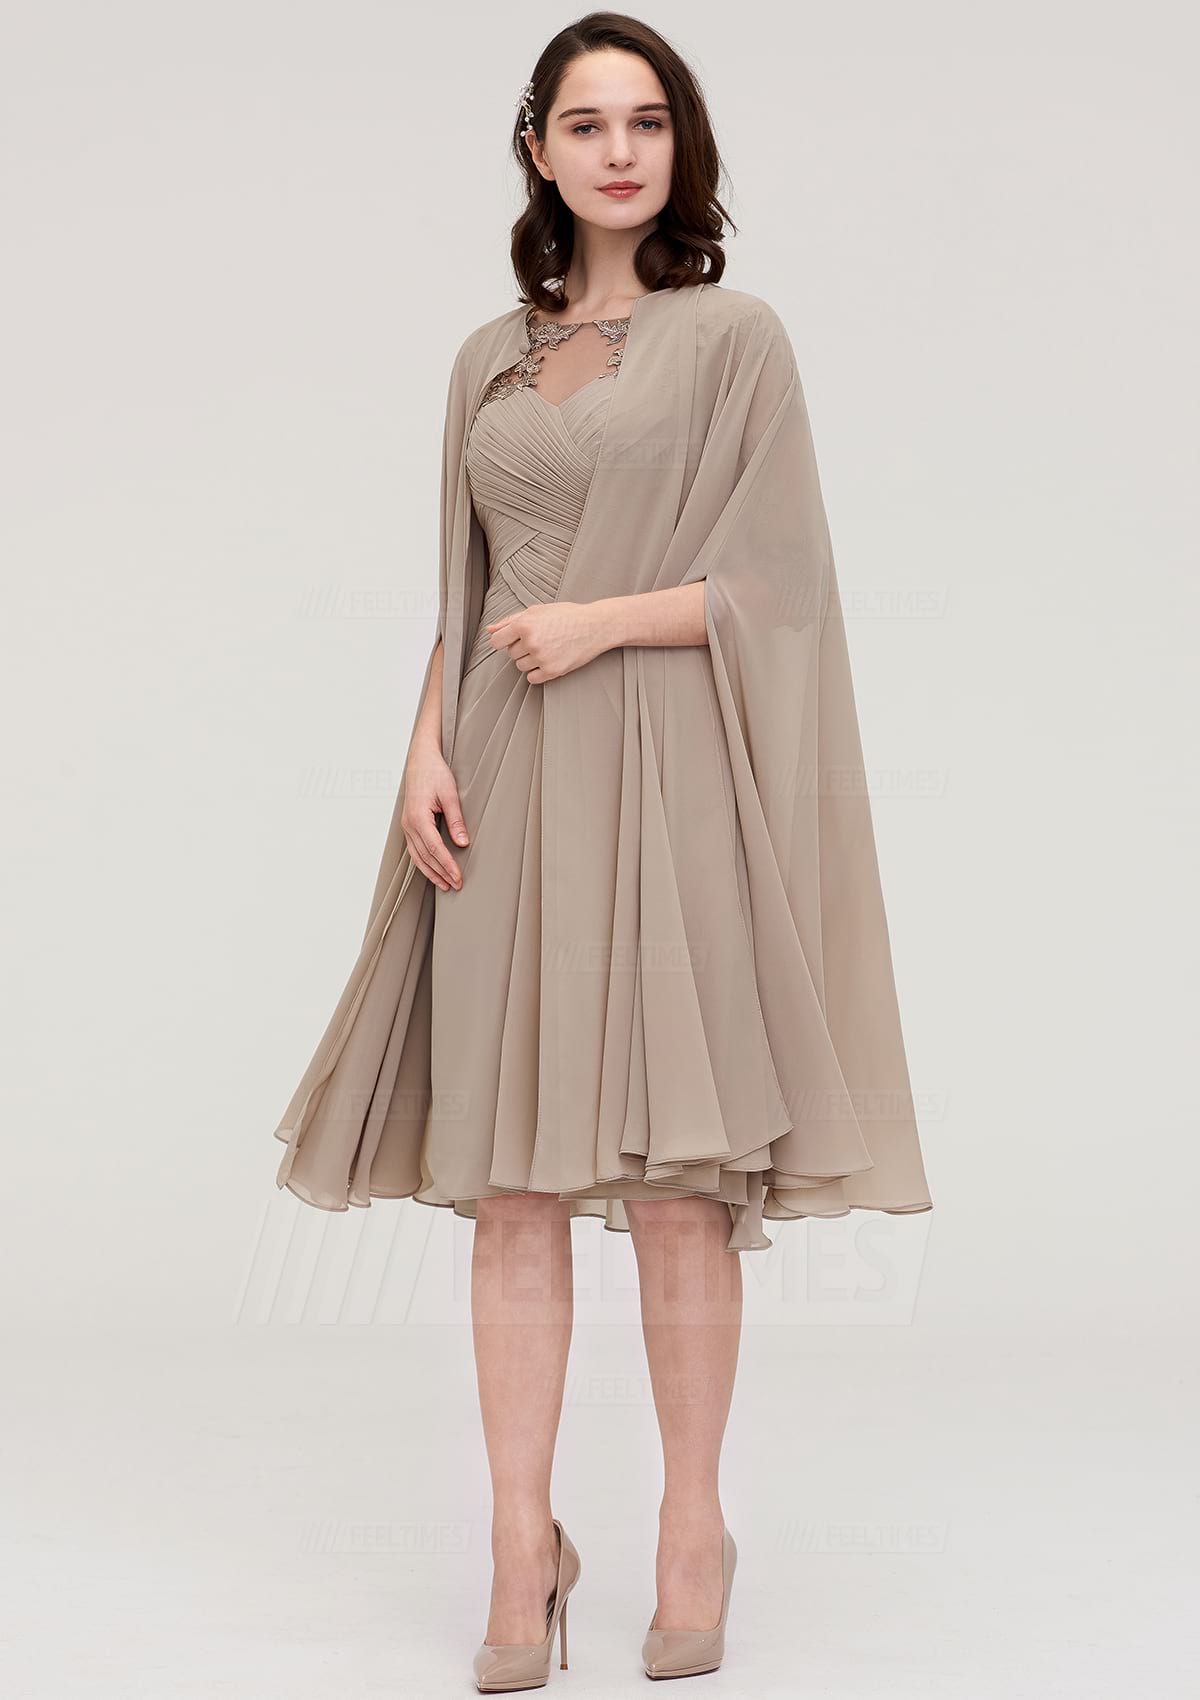 Sheath/Column Bateau Half Sleeve Knee-Length Chiffon Mother Of The Bride Dress With Jacket Appliqued Pleated